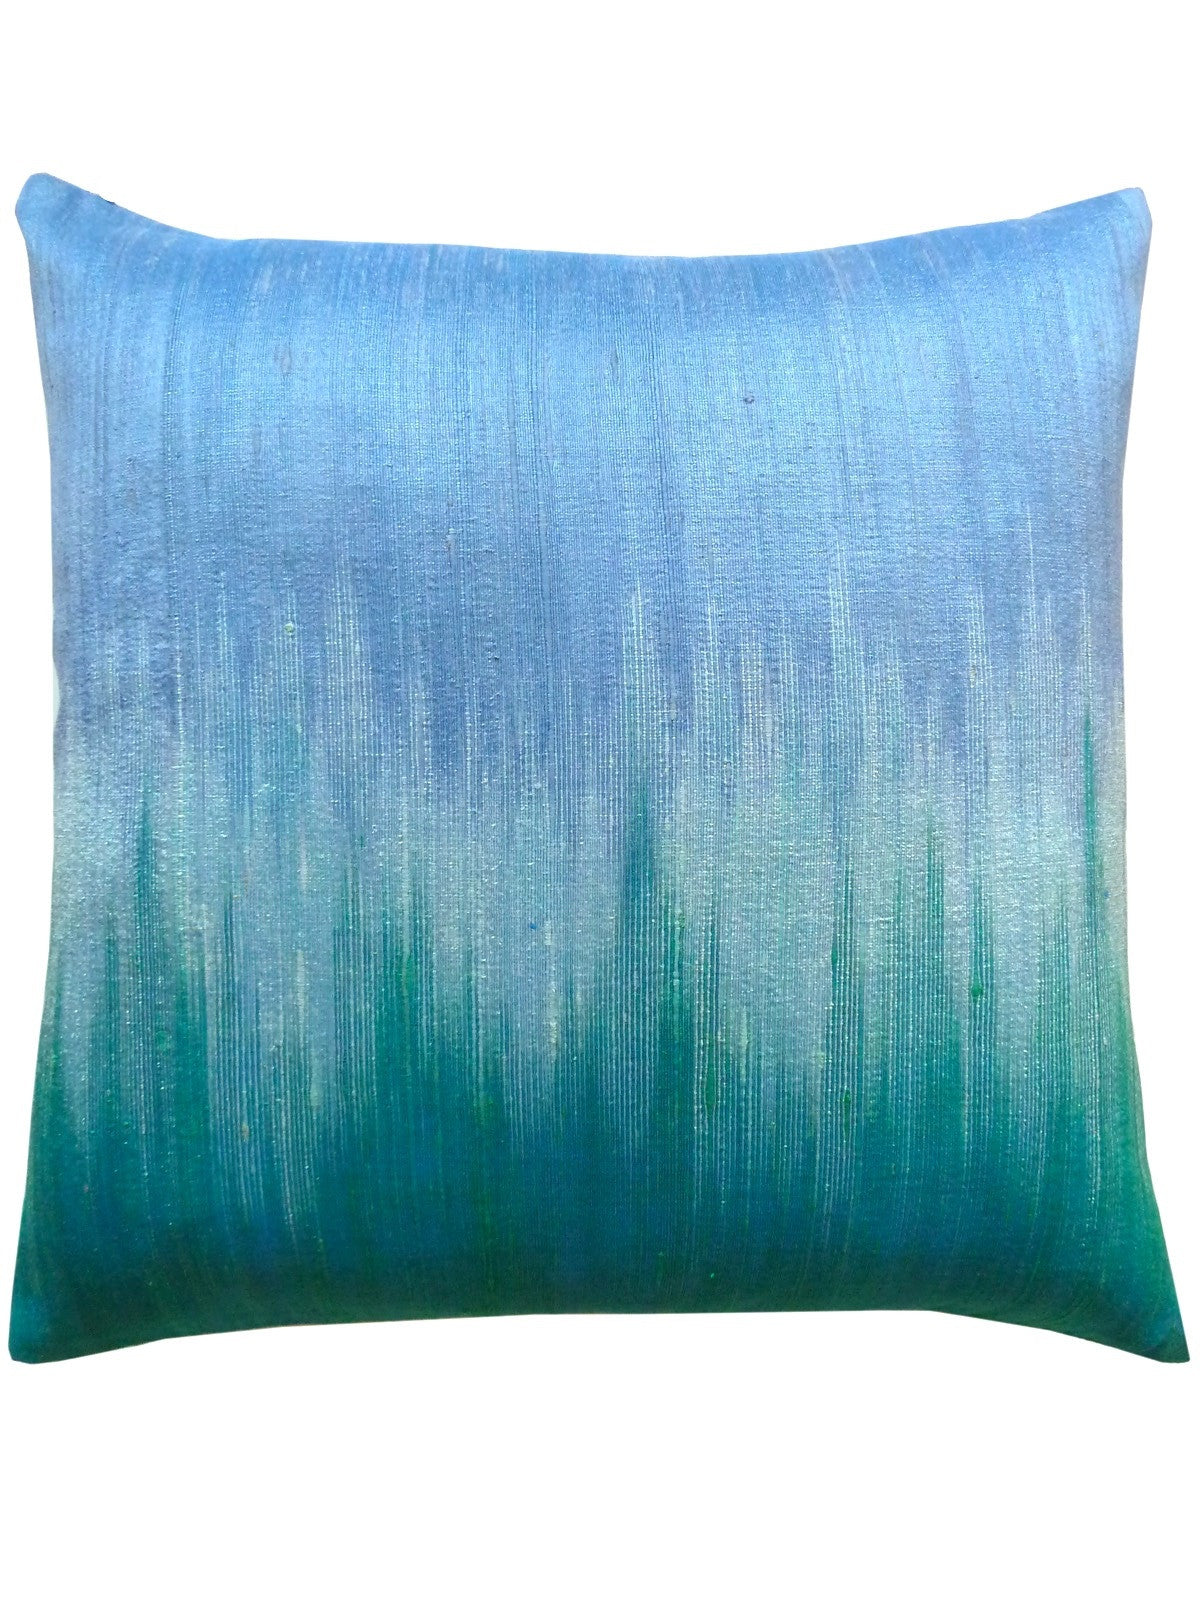 Cambodian Silk Ikat Pillow Blue Green Wave